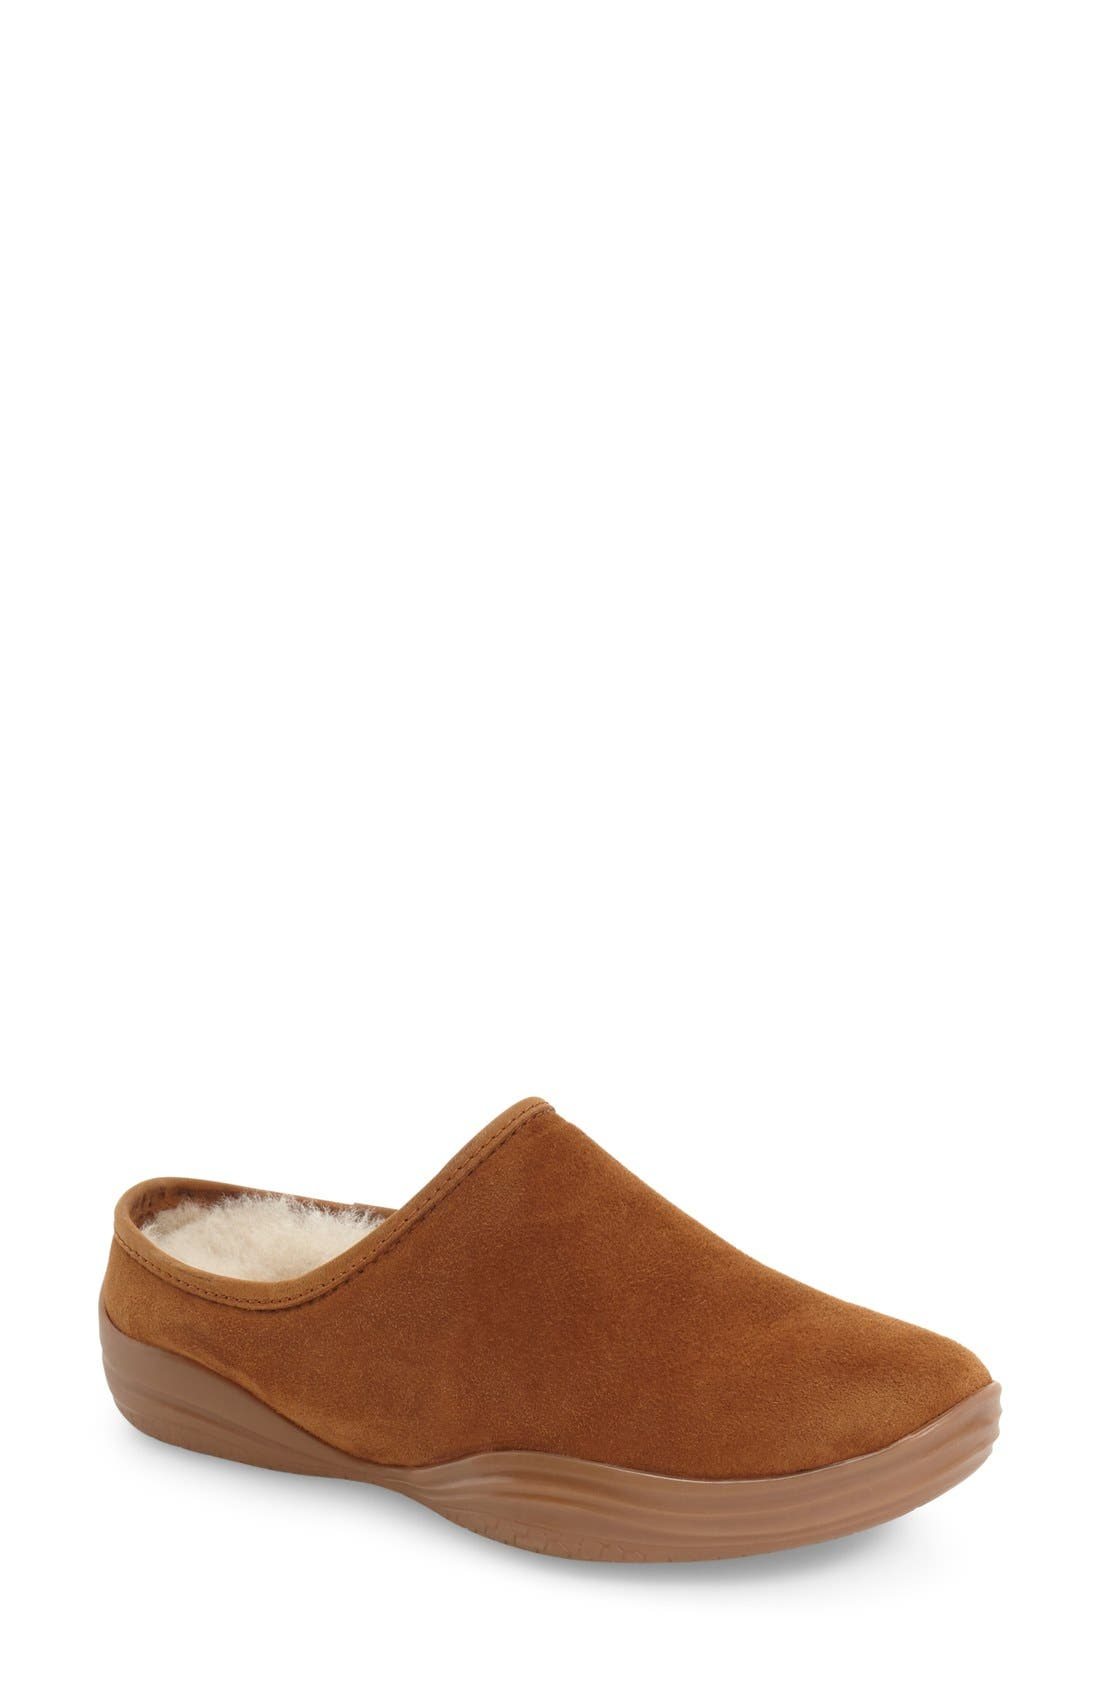 bionica 'Stamford' Genuine Shearling Clog Slipper (Women)